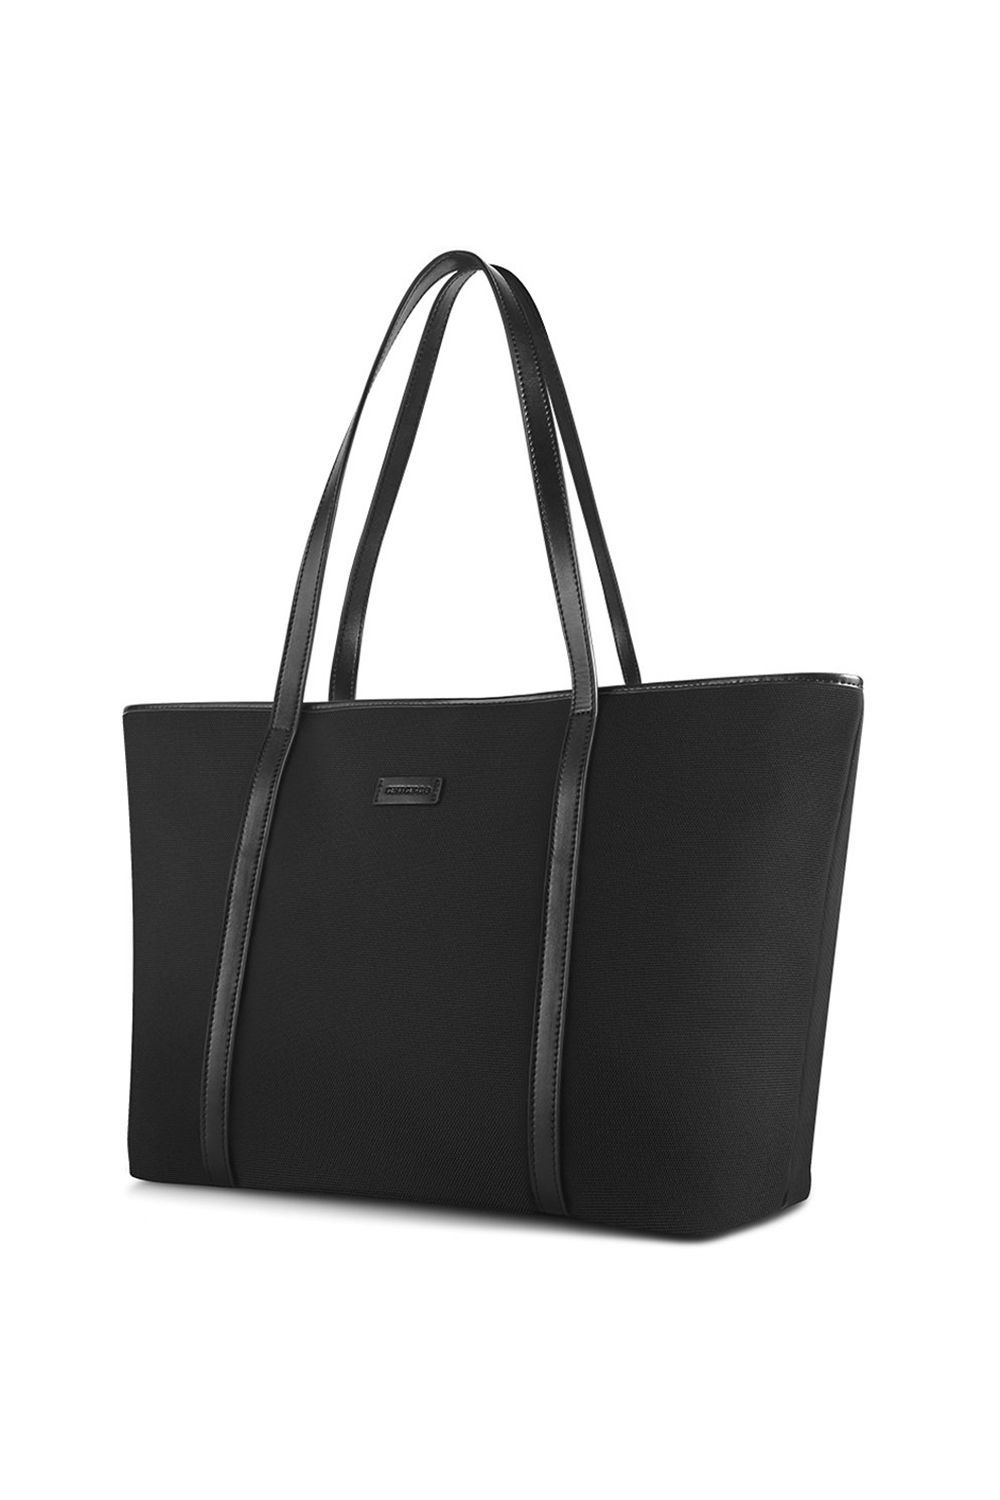 Best for Moms Basic Large Travel Tote Chiceco $40.99 SHOP IT The main compliments on this tote center on it being a good option for working/pumping moms. On the weekdays, it can hold all your office gear and on the weekends, it turns into a cute functional diaper bag.